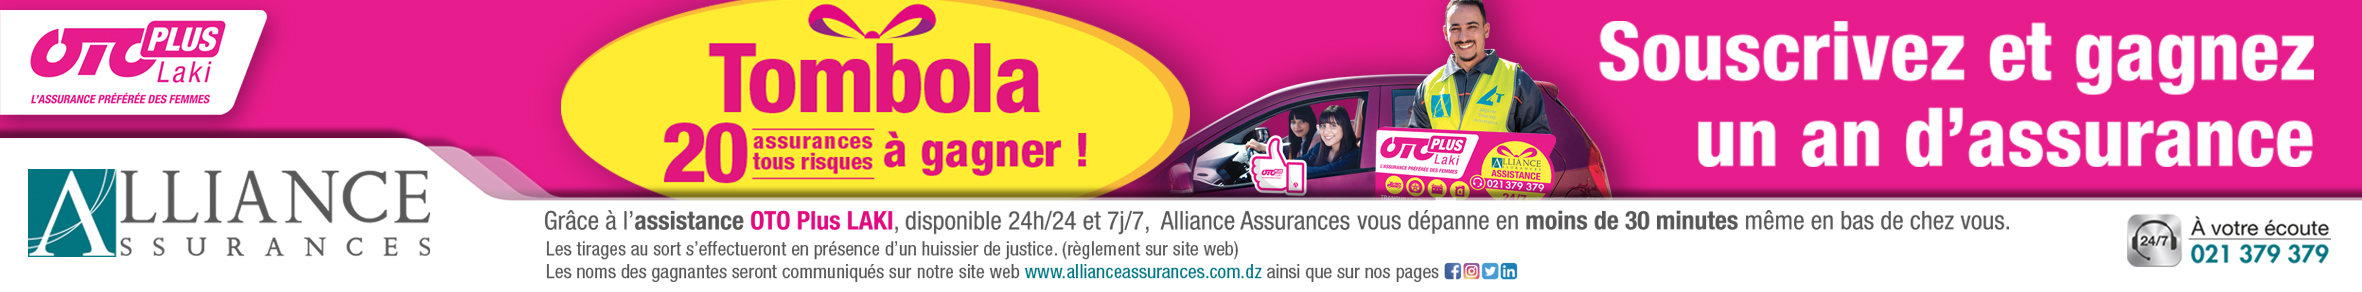 Alliance-assurances_05_03_2020